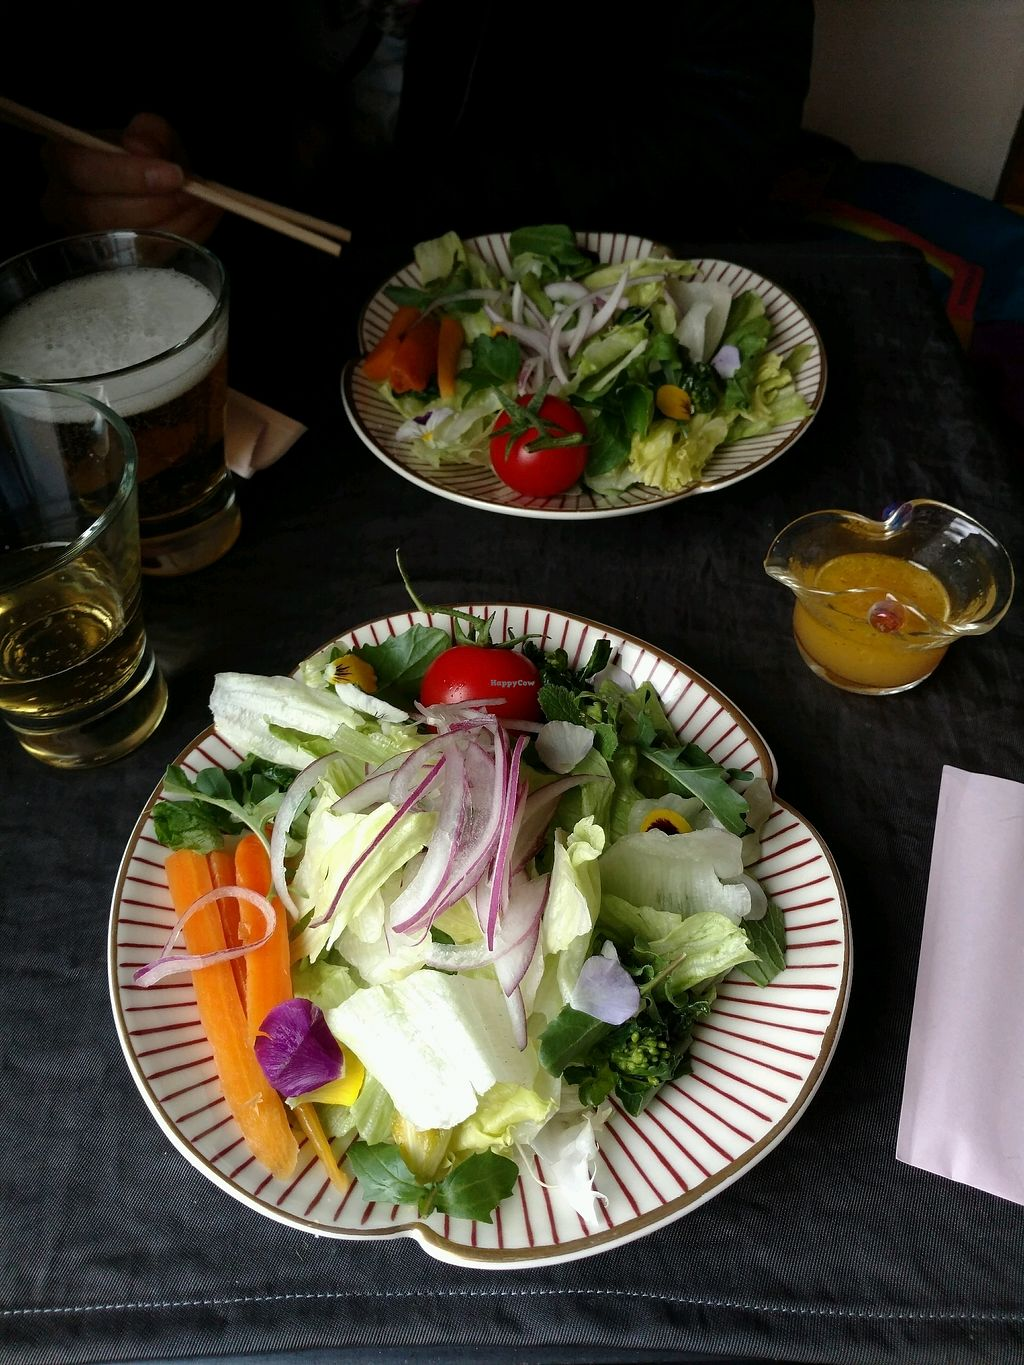 """Photo of Onwa  by <a href=""""/members/profile/barbicanben"""">barbicanben</a> <br/>Salad with orange dressing <br/> April 12, 2018  - <a href='/contact/abuse/image/109696/384457'>Report</a>"""